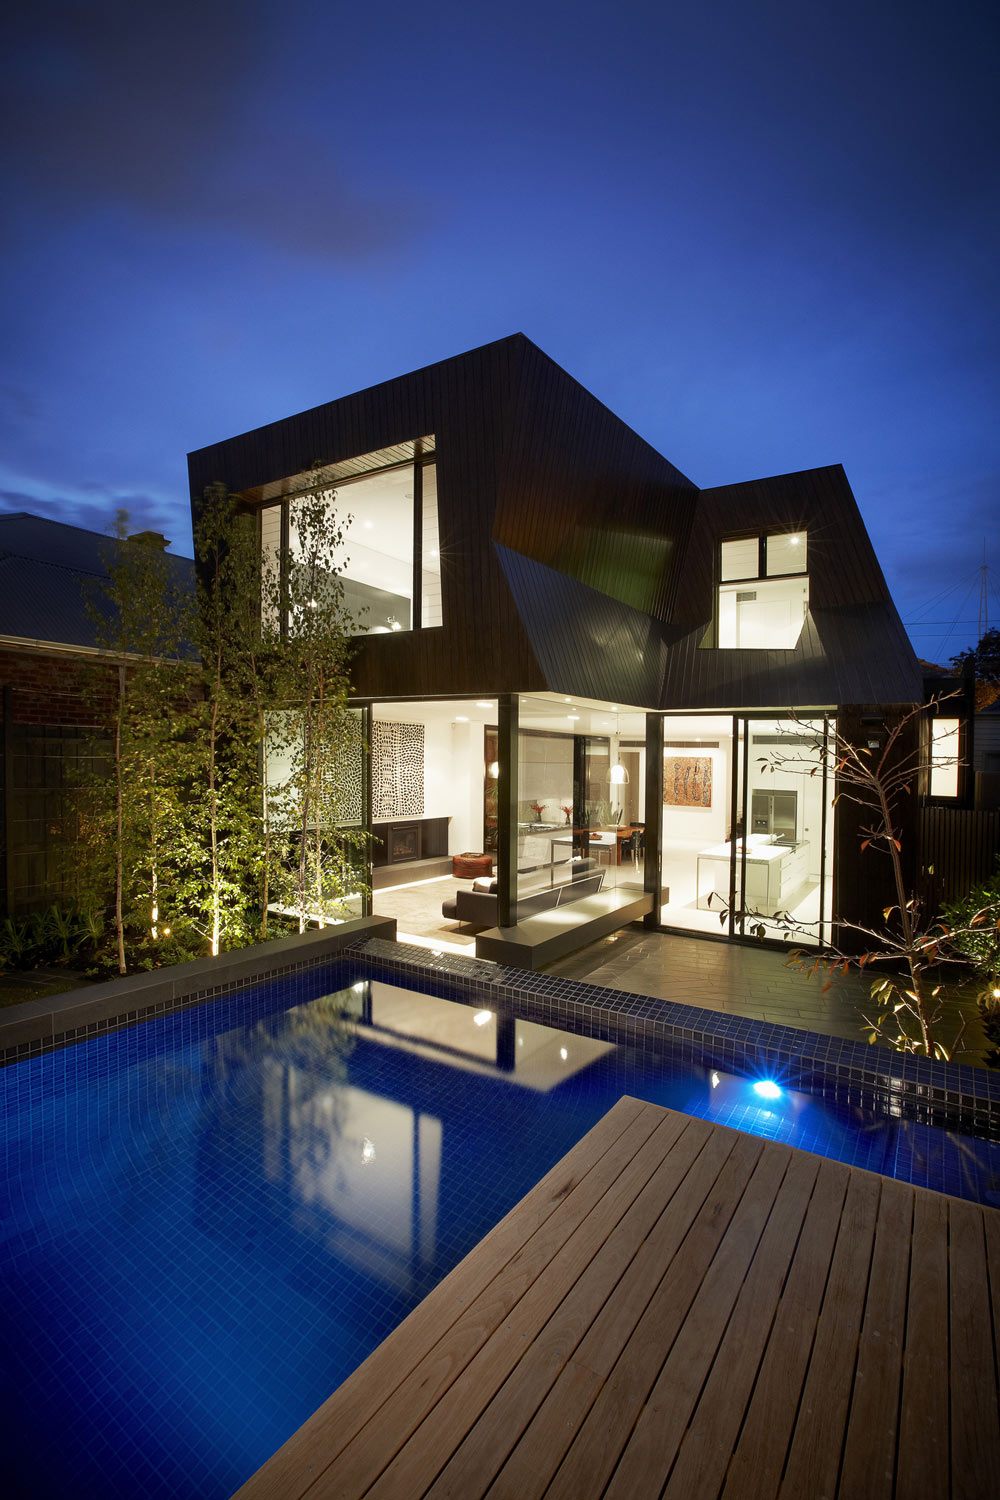 Enclave house in melbourne australia by bkk architects for Best house designs melbourne